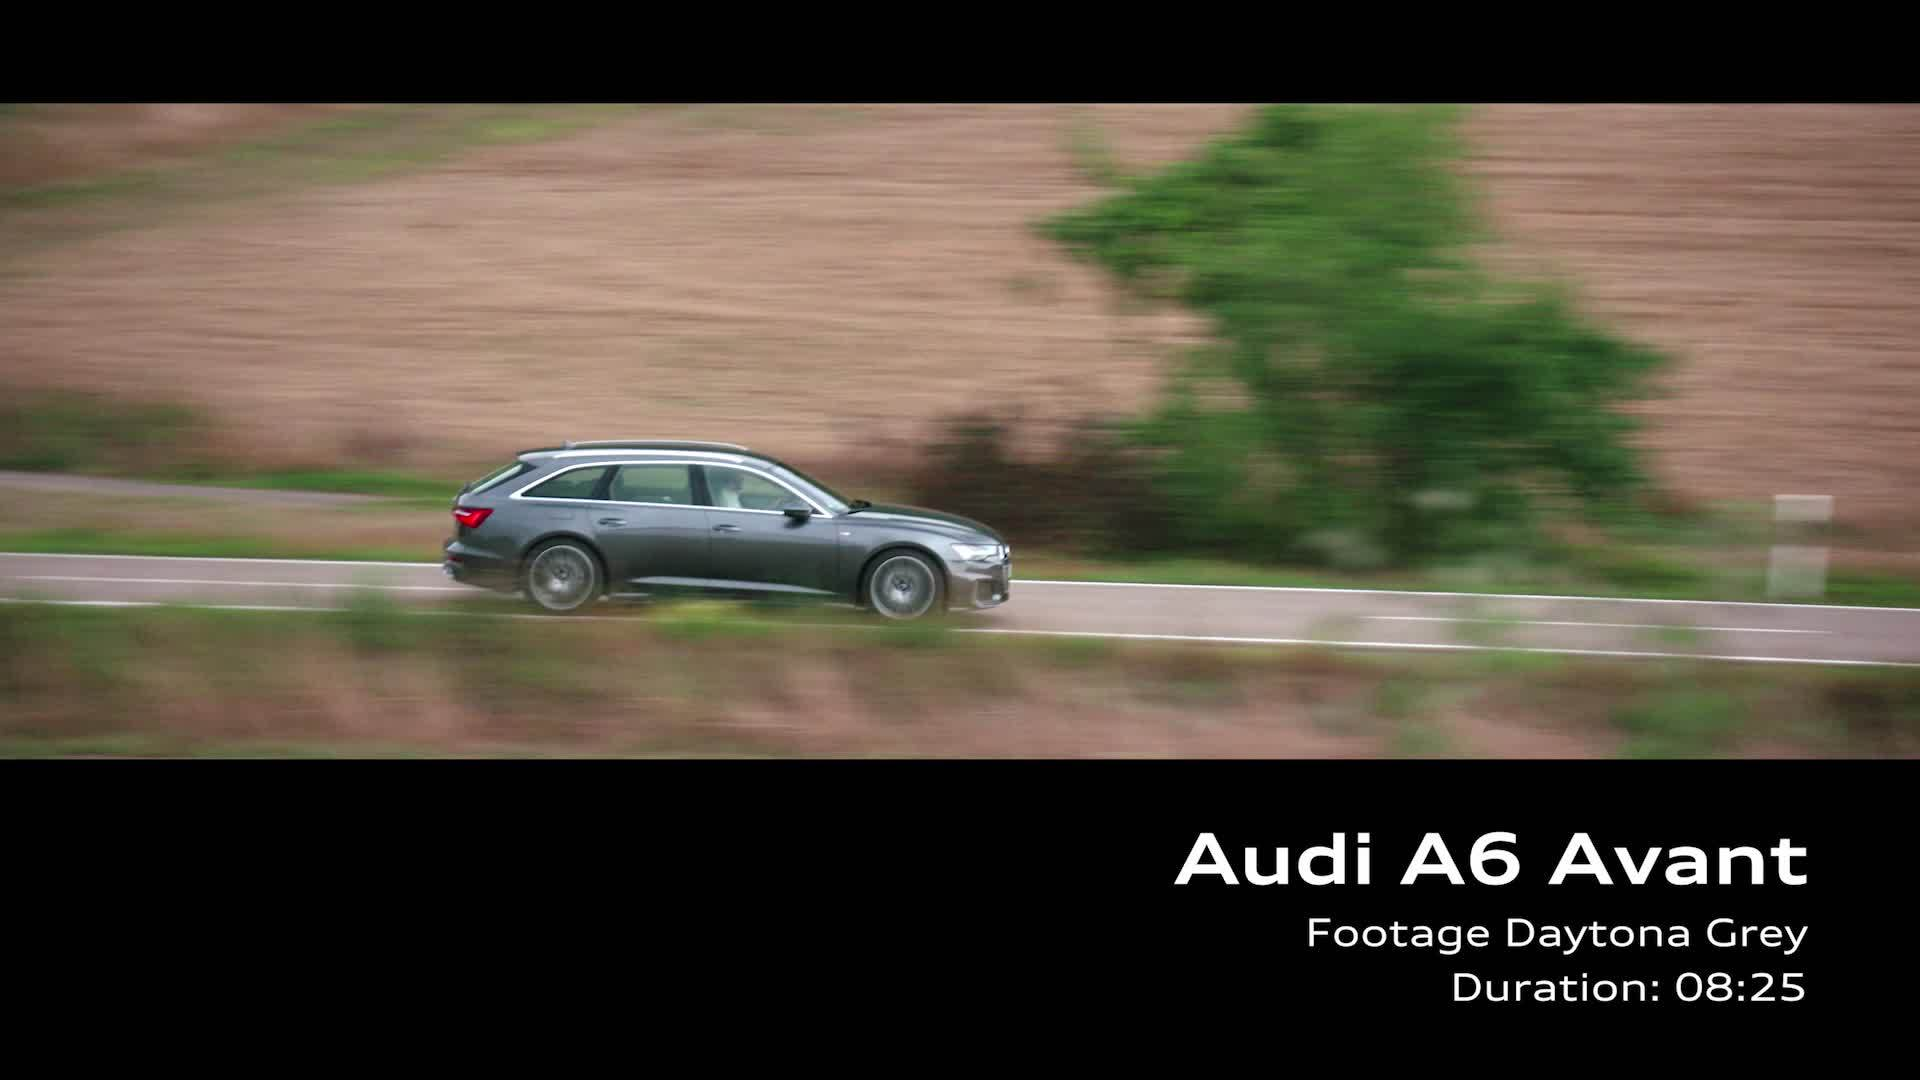 Audi A6 Avant – on Location Footage Daytona Grau